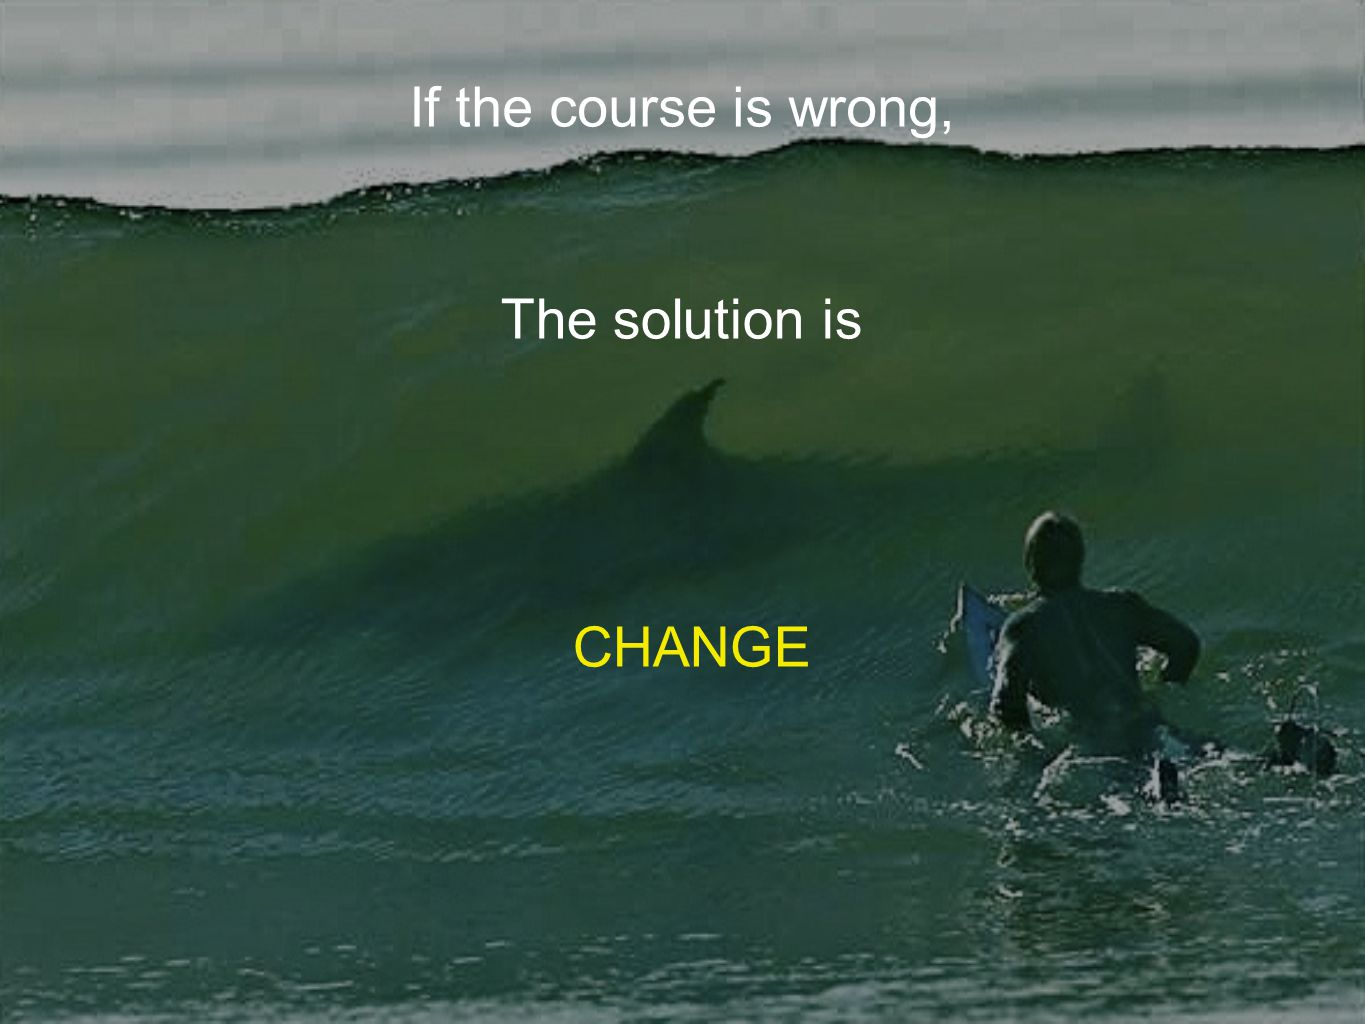 If the course is wrong, The solution is CHANGE